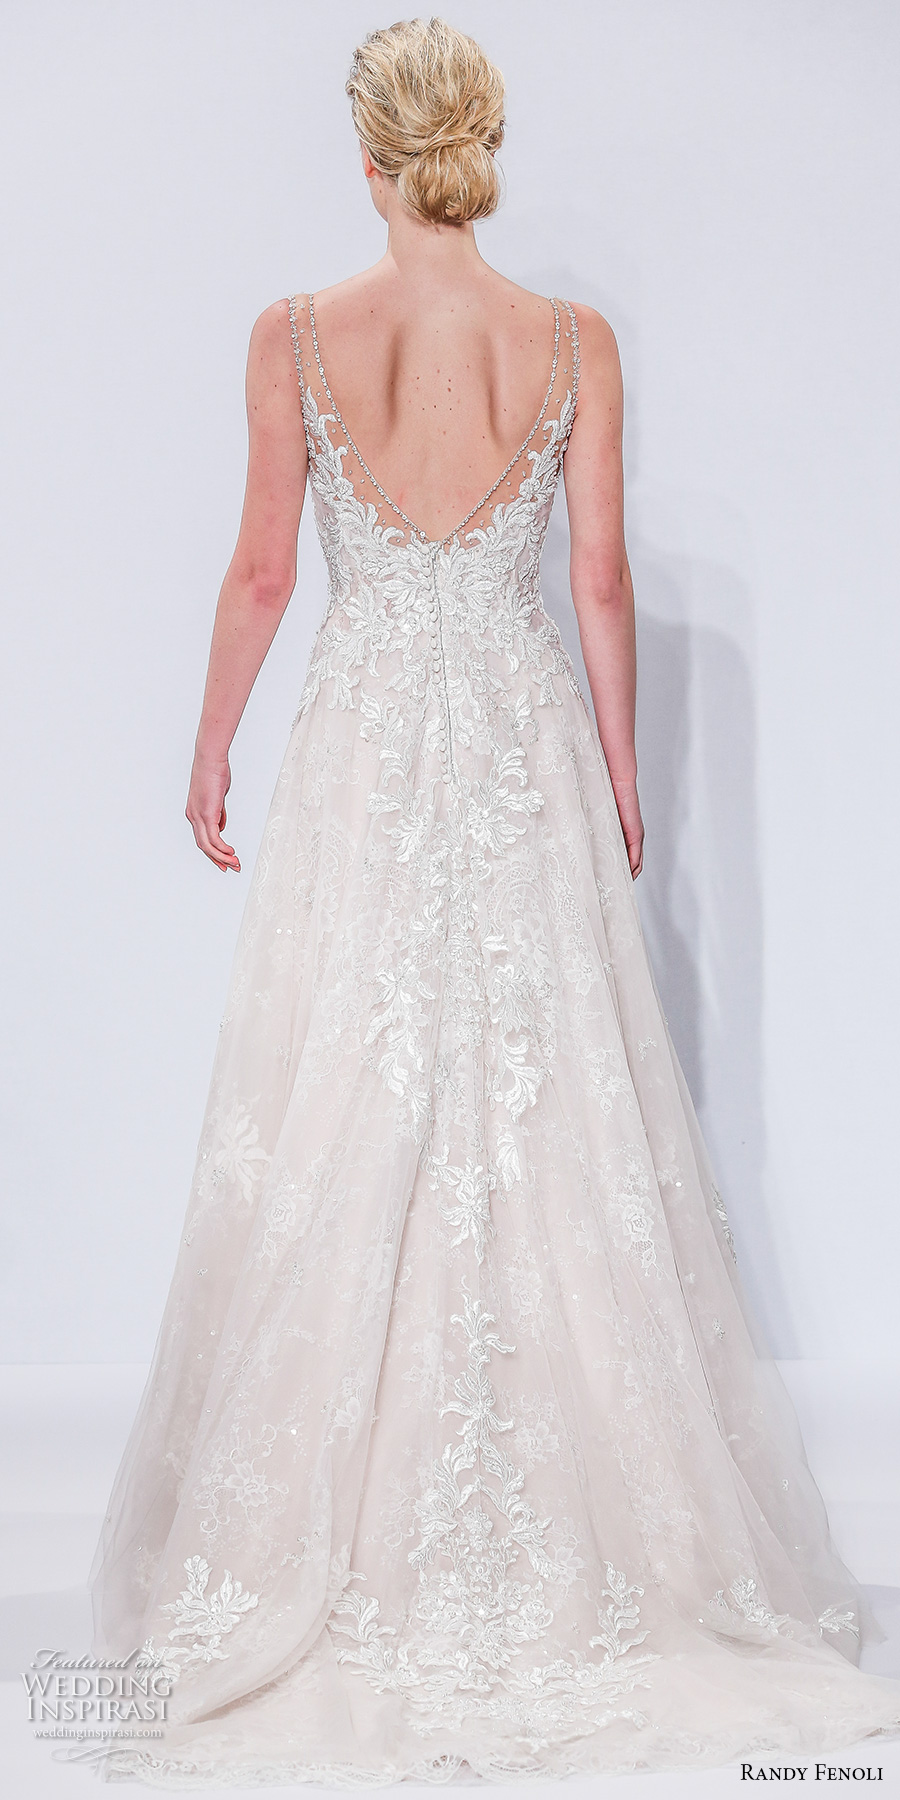 randy fenoli spring 2018 bridal sleeveless sheer strap v neck heavily embellished bodice tulle skirt elegant romantic a  line wedding dress open v back sweep train (11) bv